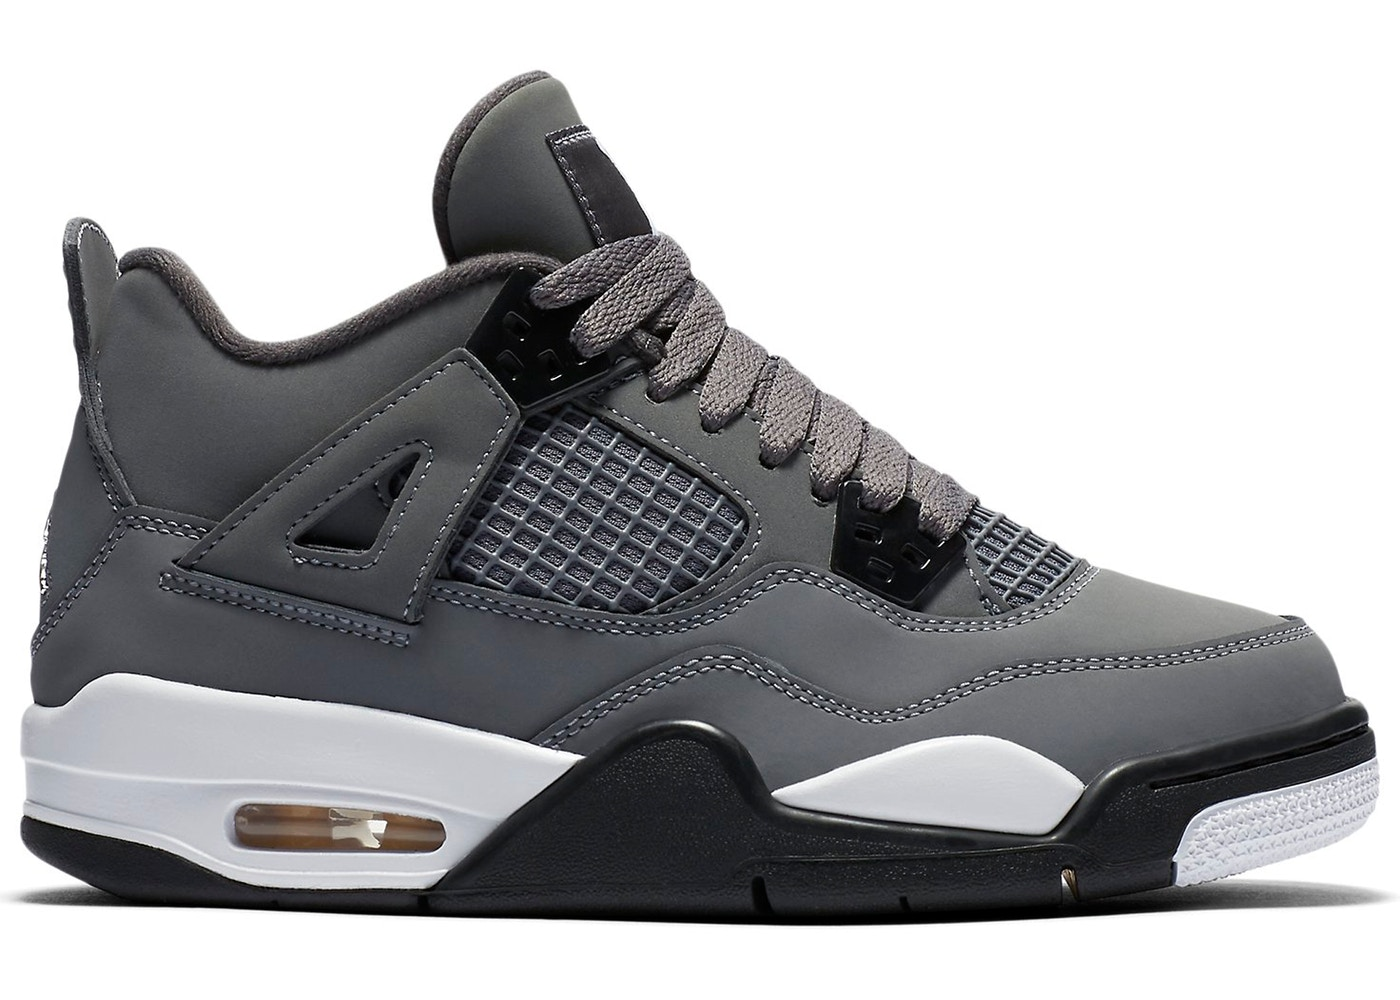 c50c71e3e823 Buy Air Jordan 4 Shoes & Deadstock Sneakers